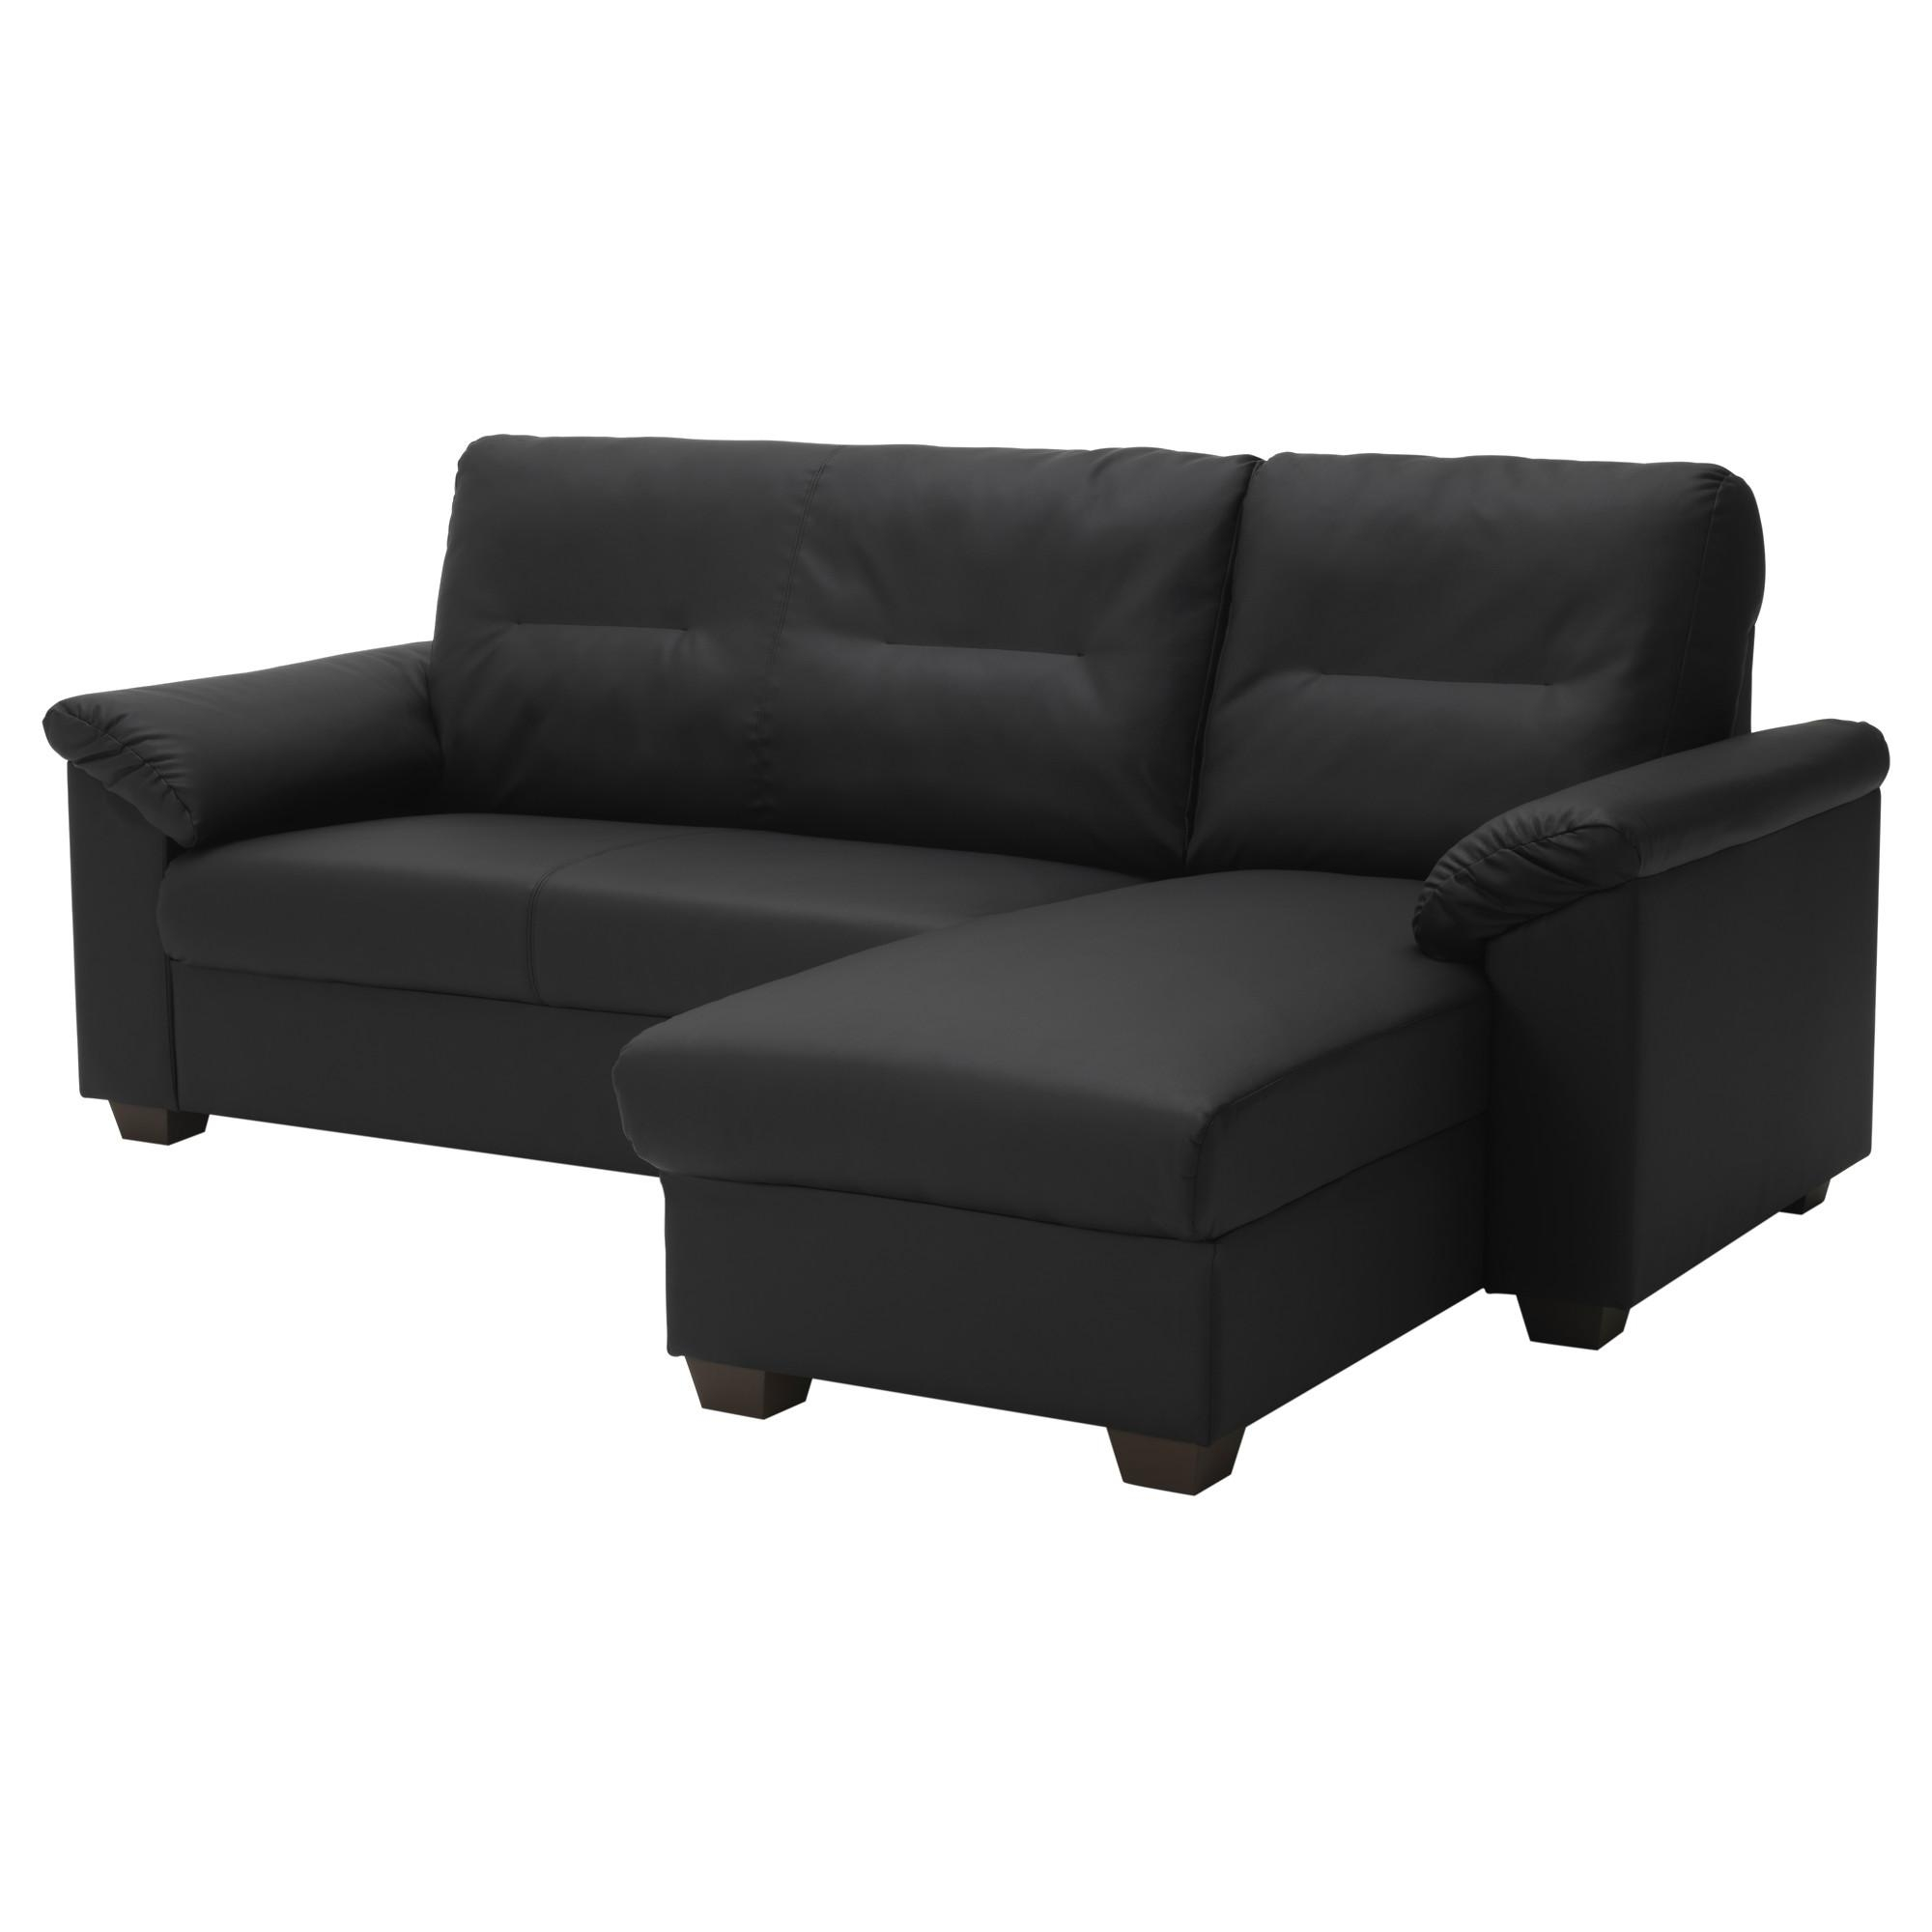 Furniture: Sectional Couches Ikea | Ikea Leather Sofa | Sleeper With Regard To Sleeper Sectional Sofa Ikea (View 17 of 20)